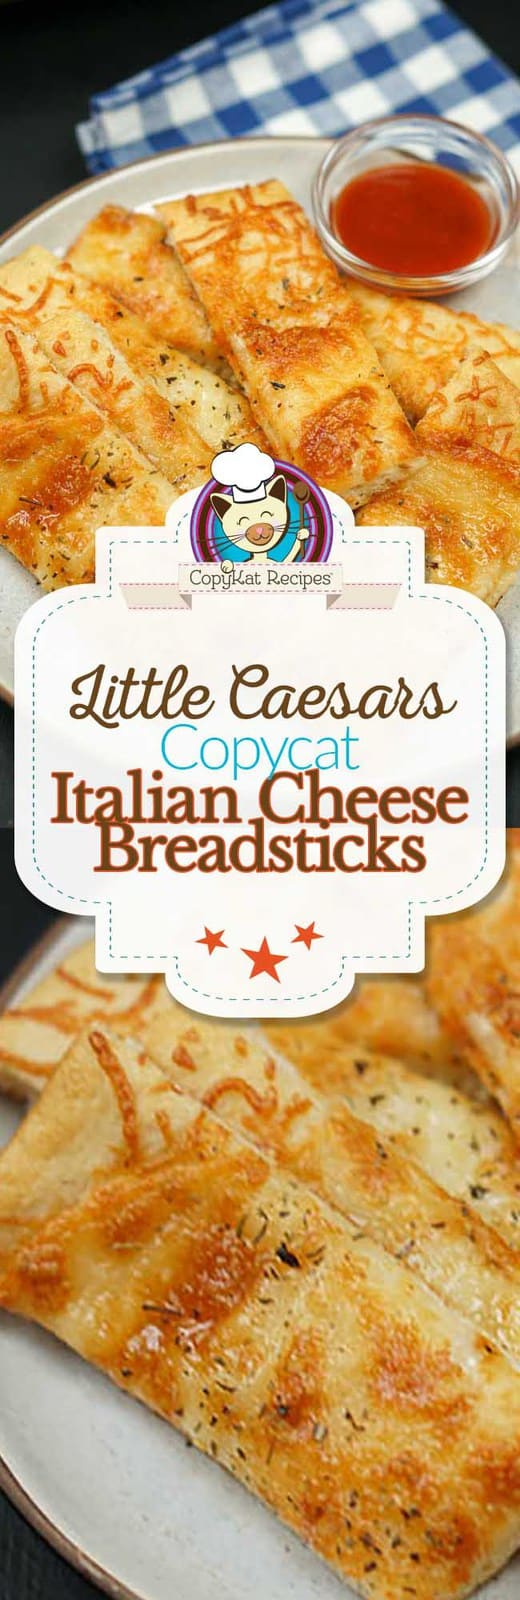 Little Caesars Italian Cheese Breadsticks can be made at home with easy copycat recipe.